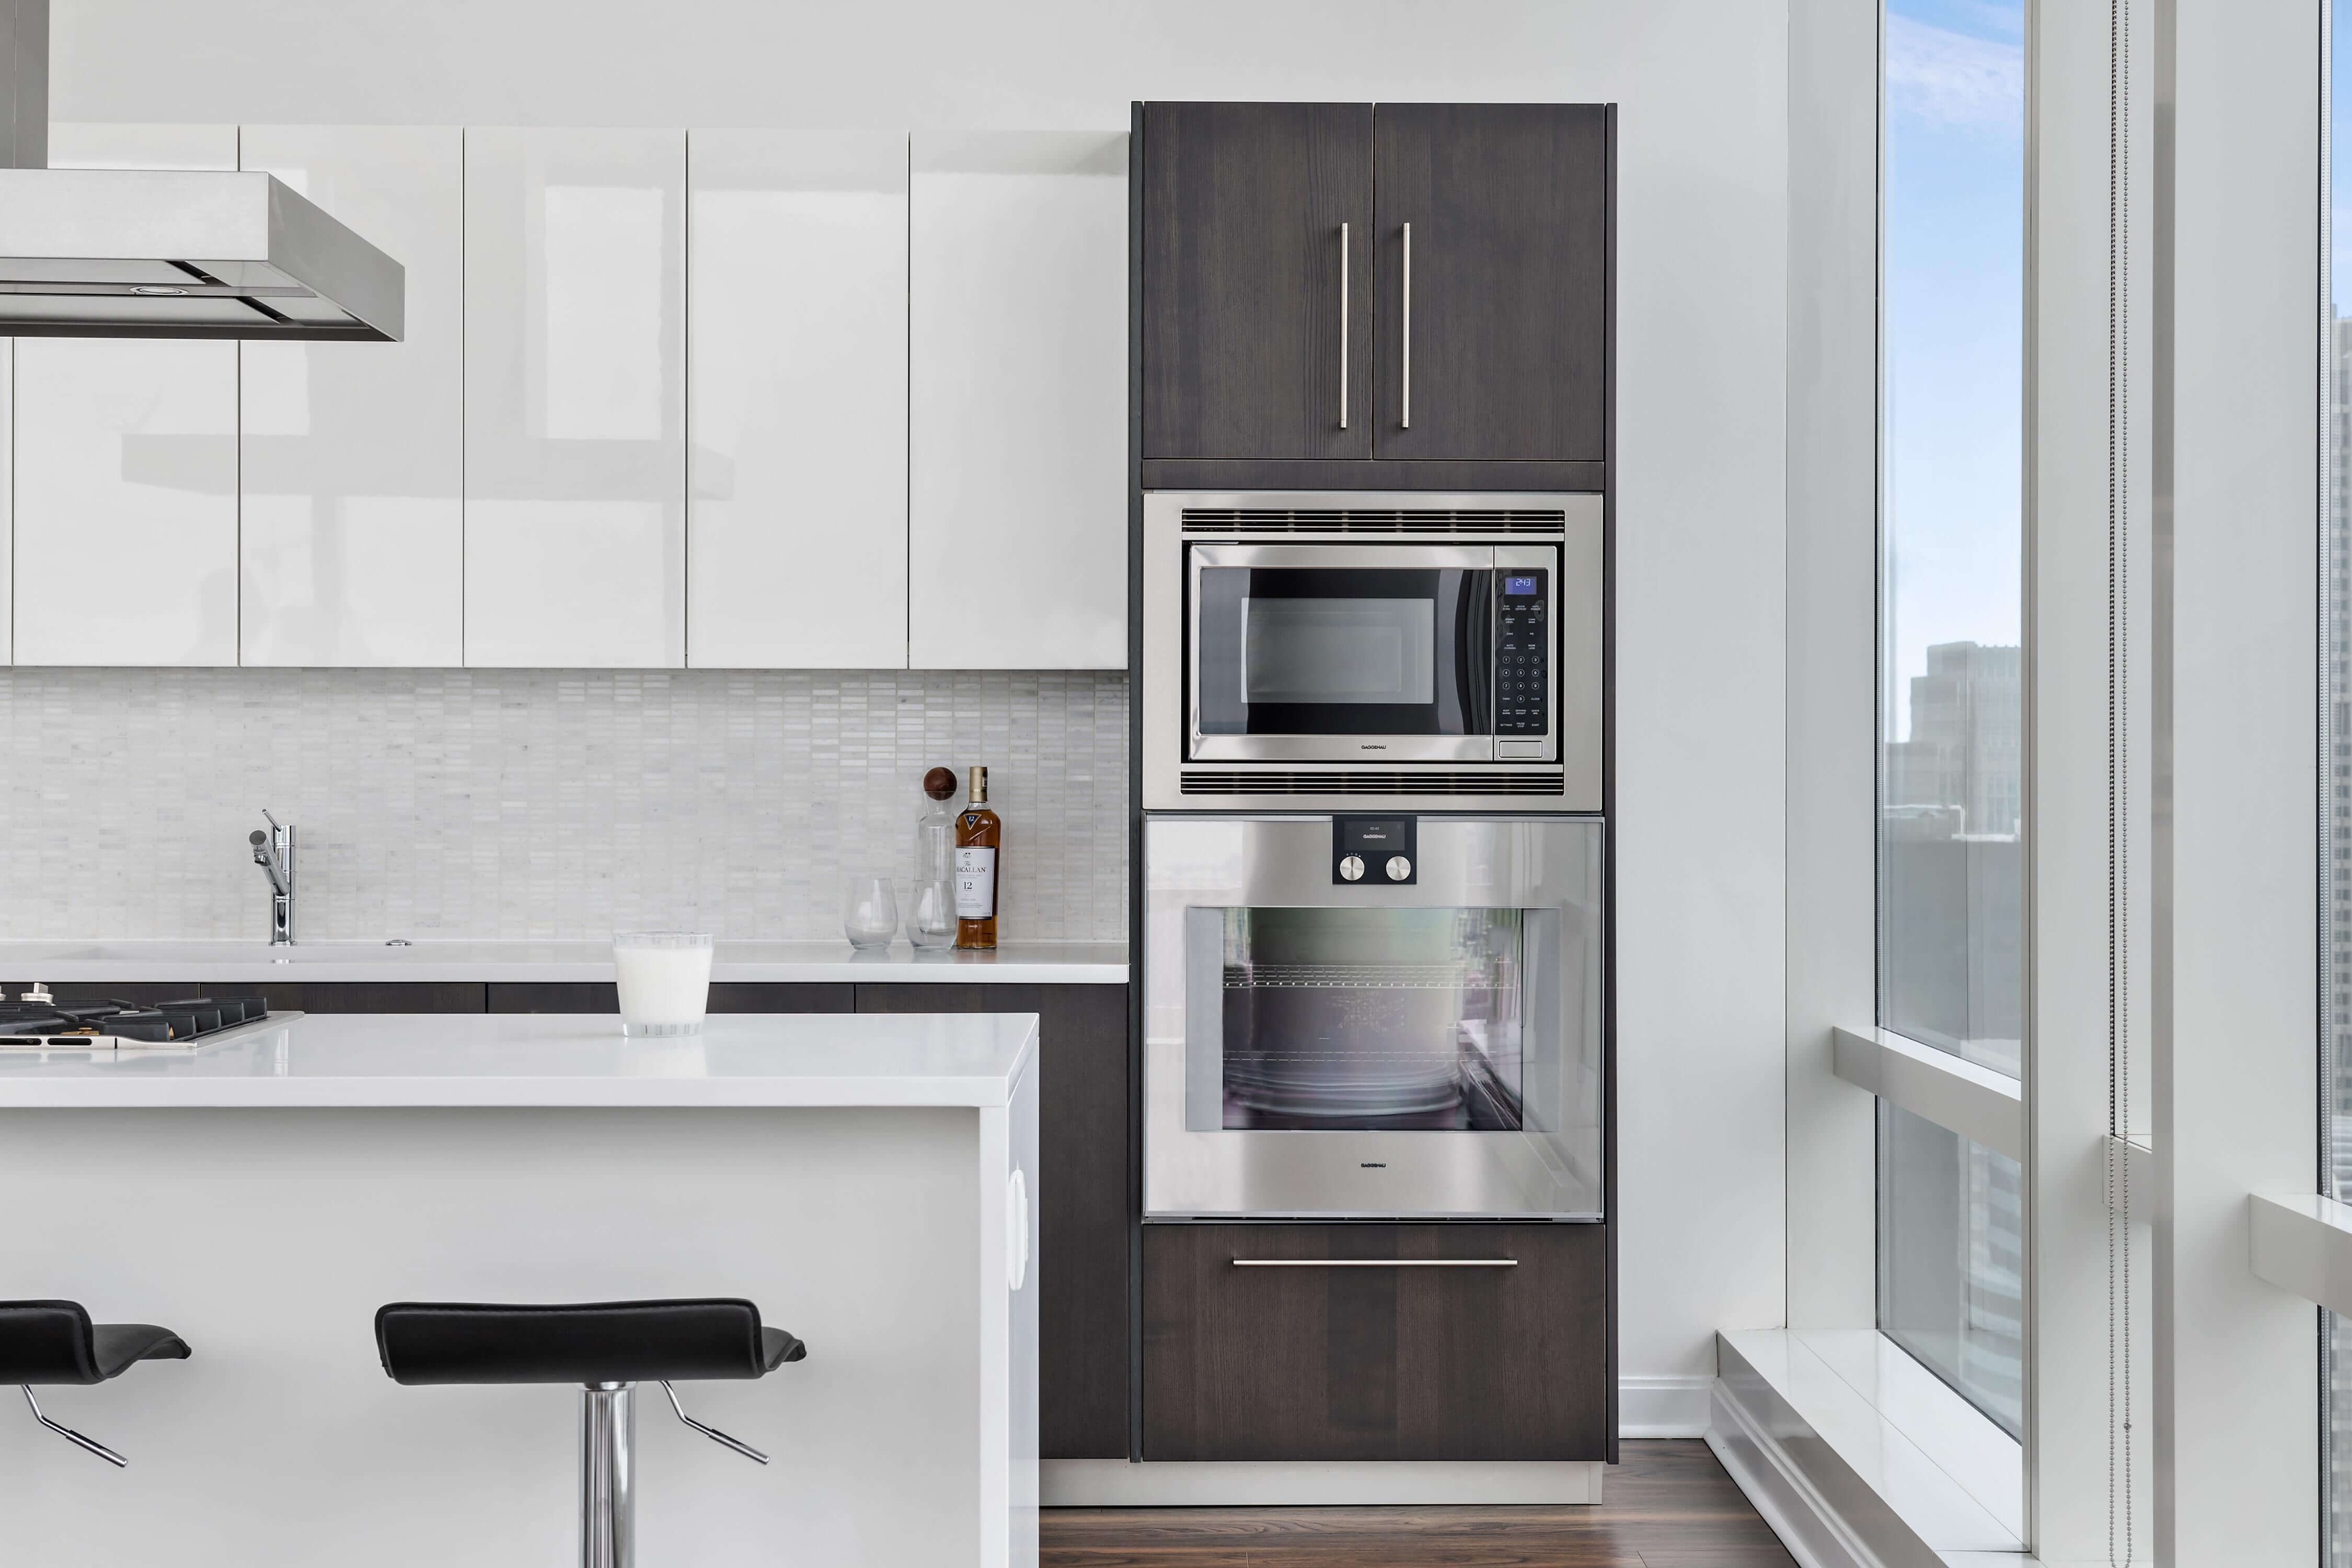 Be romanced by designer kitchens with duotone cabinetry, Gaggenau appliances and a wine cooler. banner